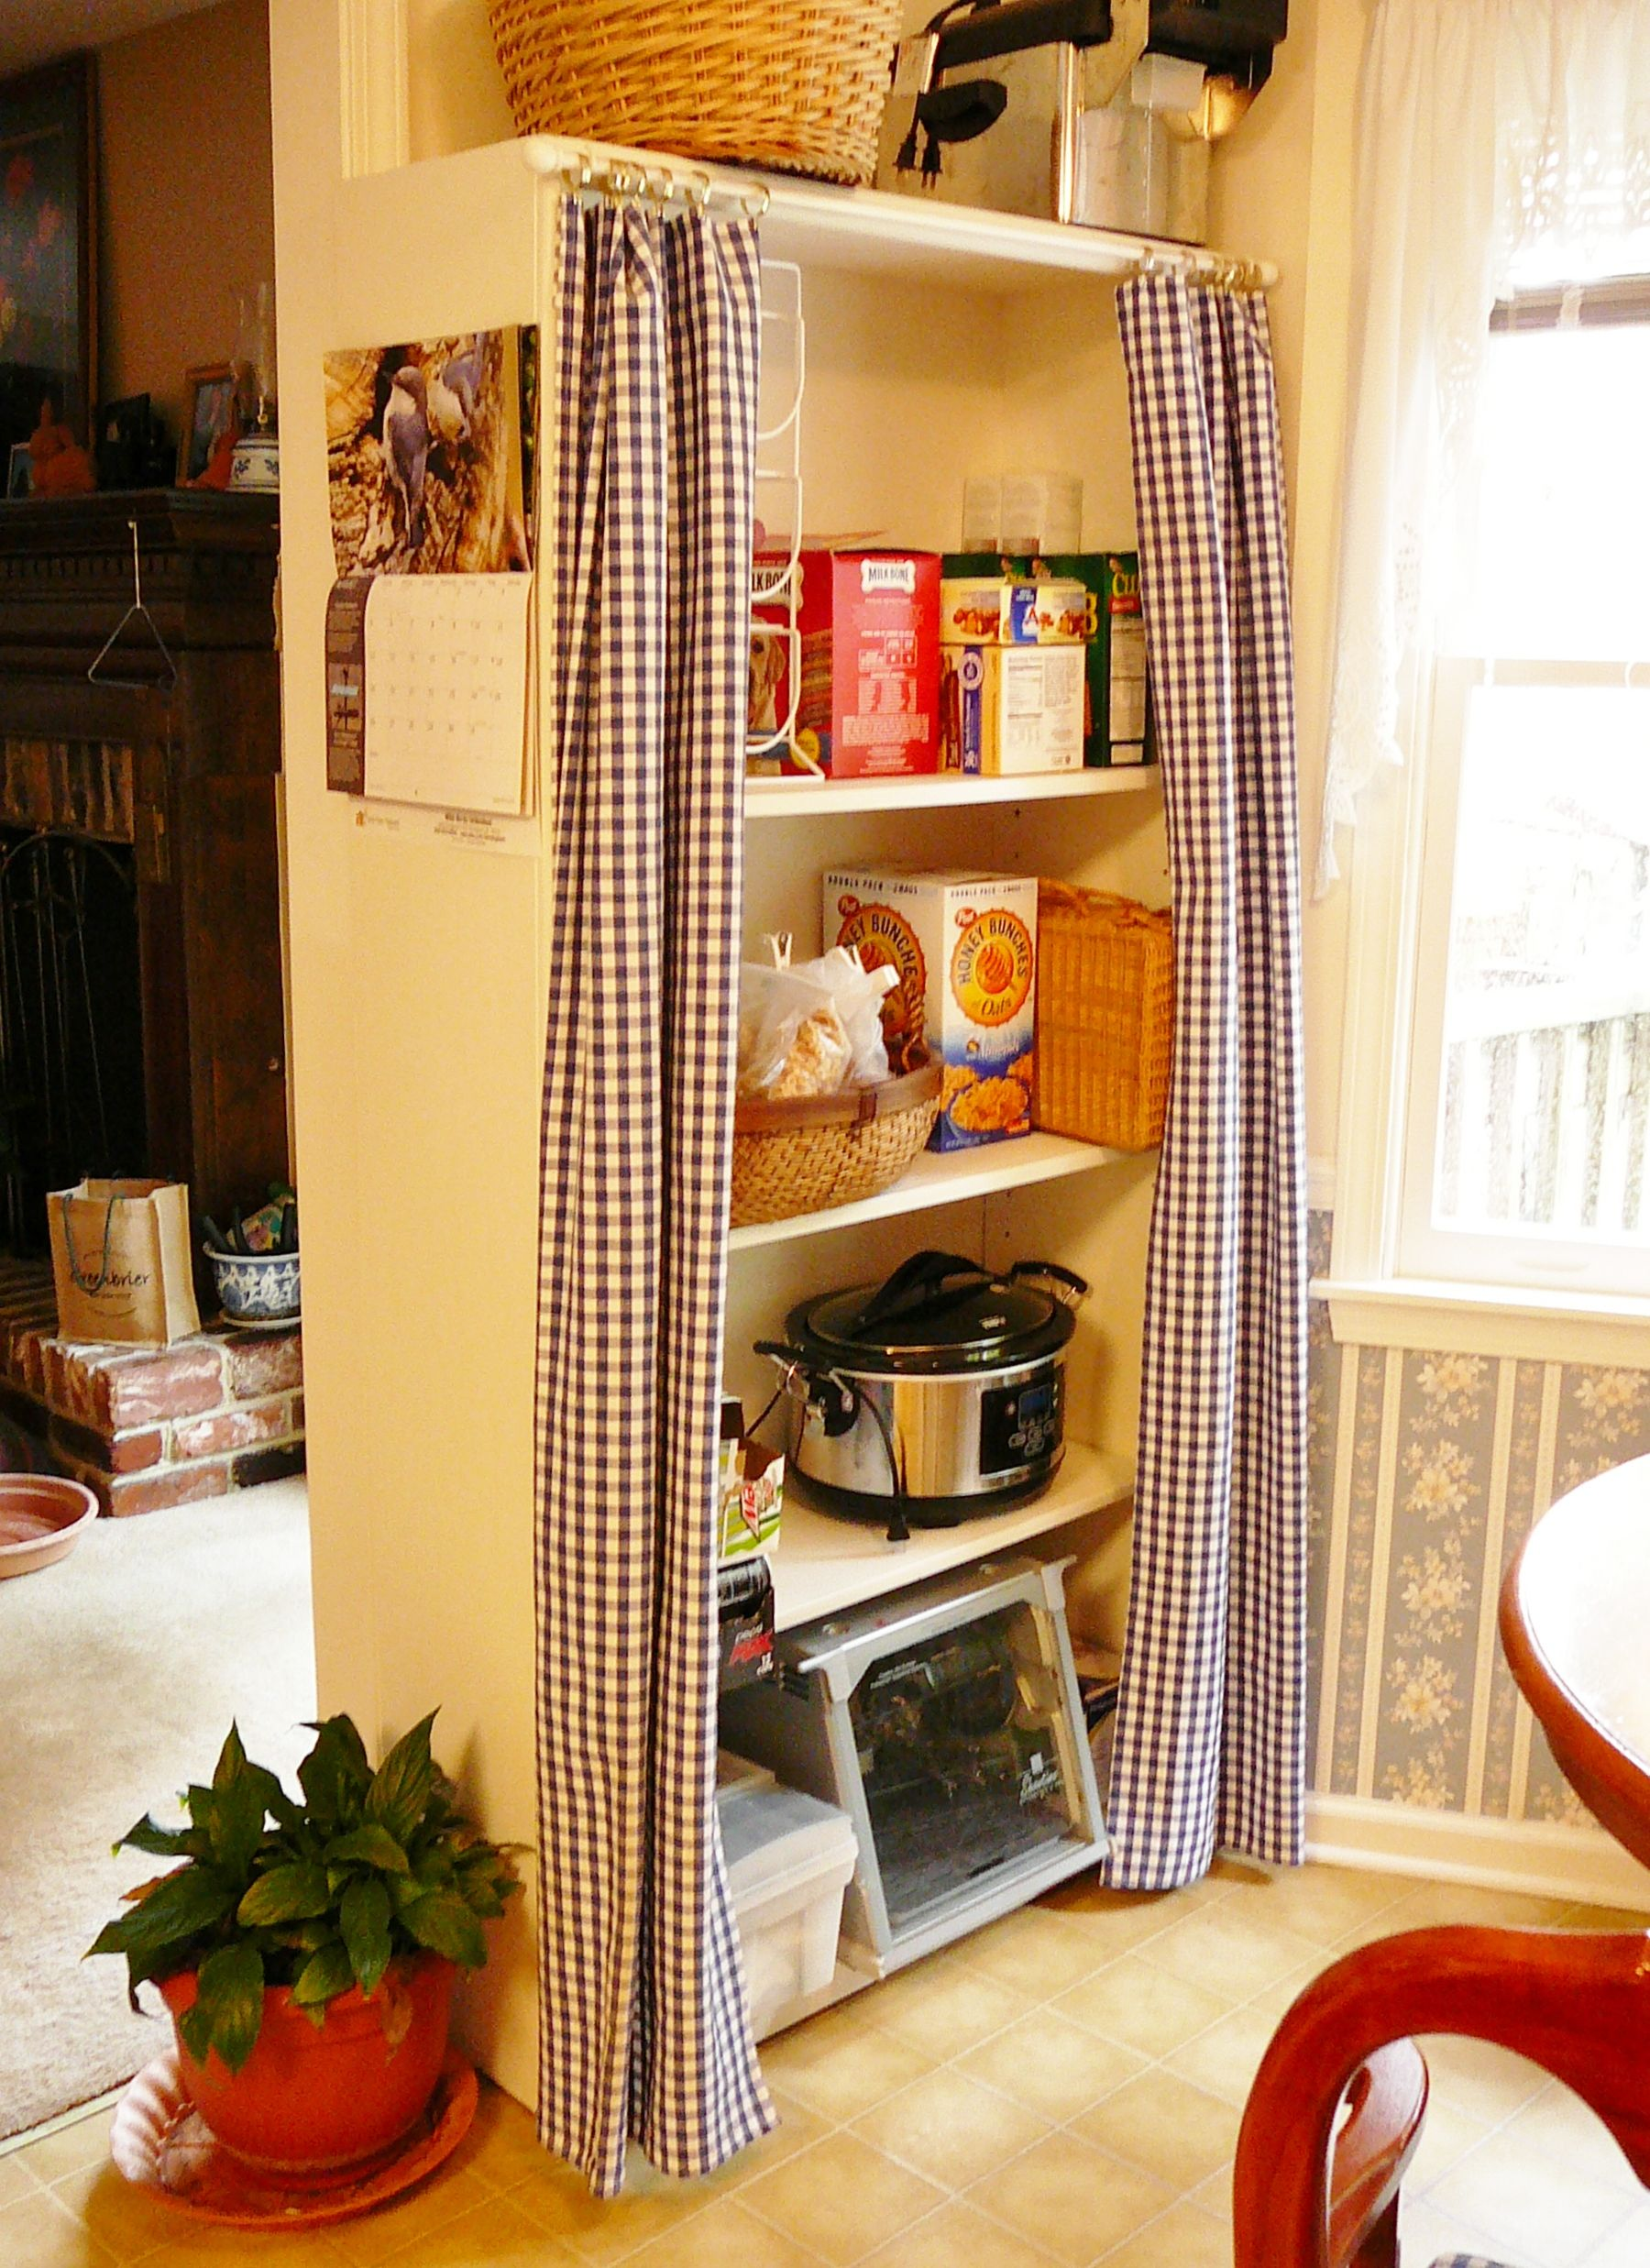 Kitchen Bookshelf This Is Exactly What I Did In My Kitchen Getting The Idea From